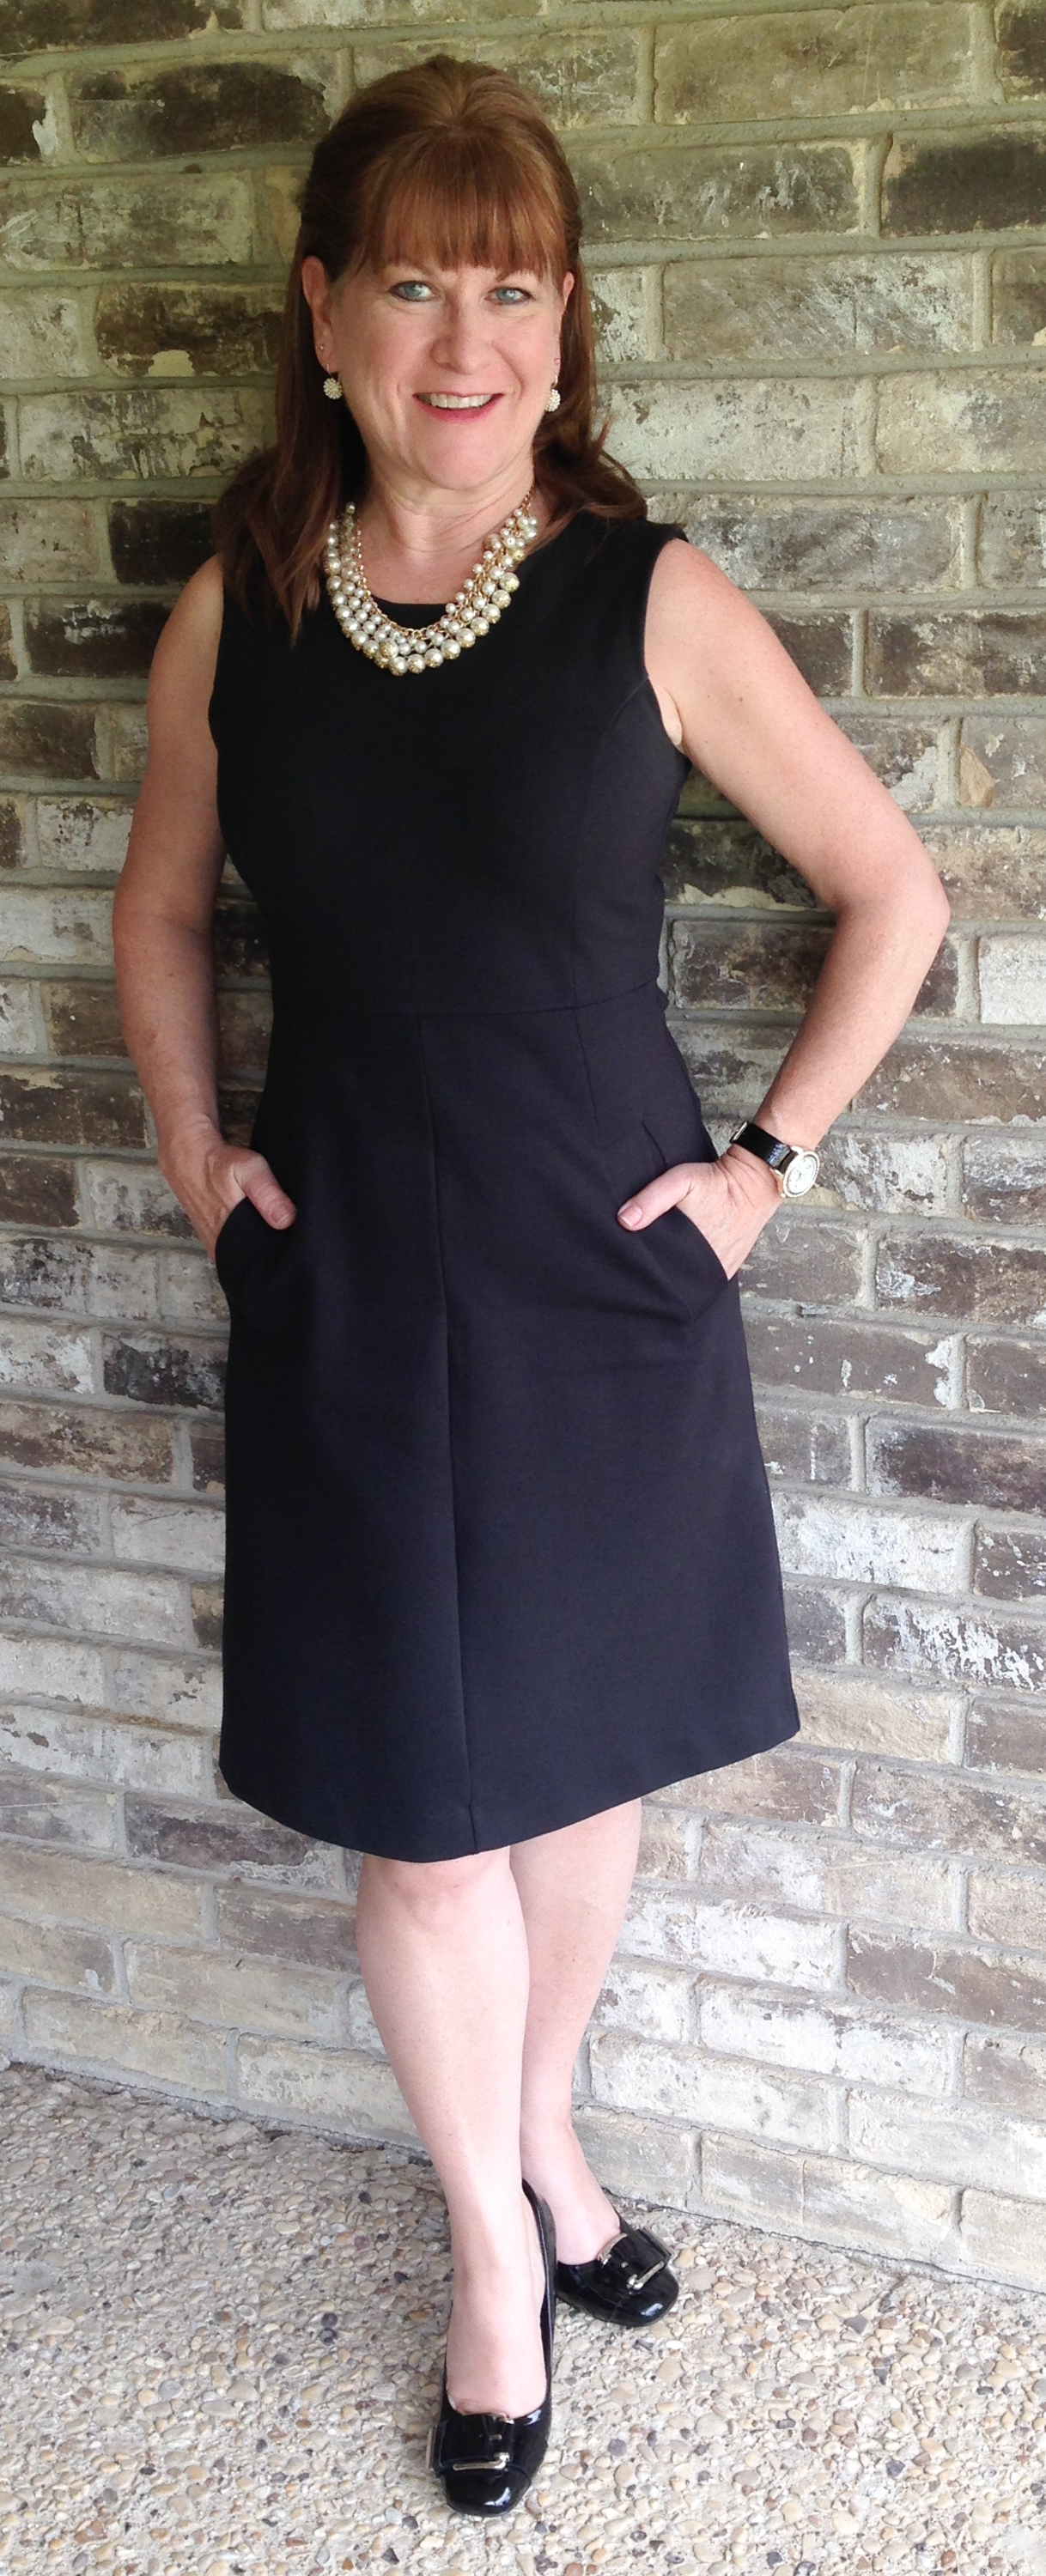 Clothing For Women Over 50 And Overweight Short Hairstyle 2013